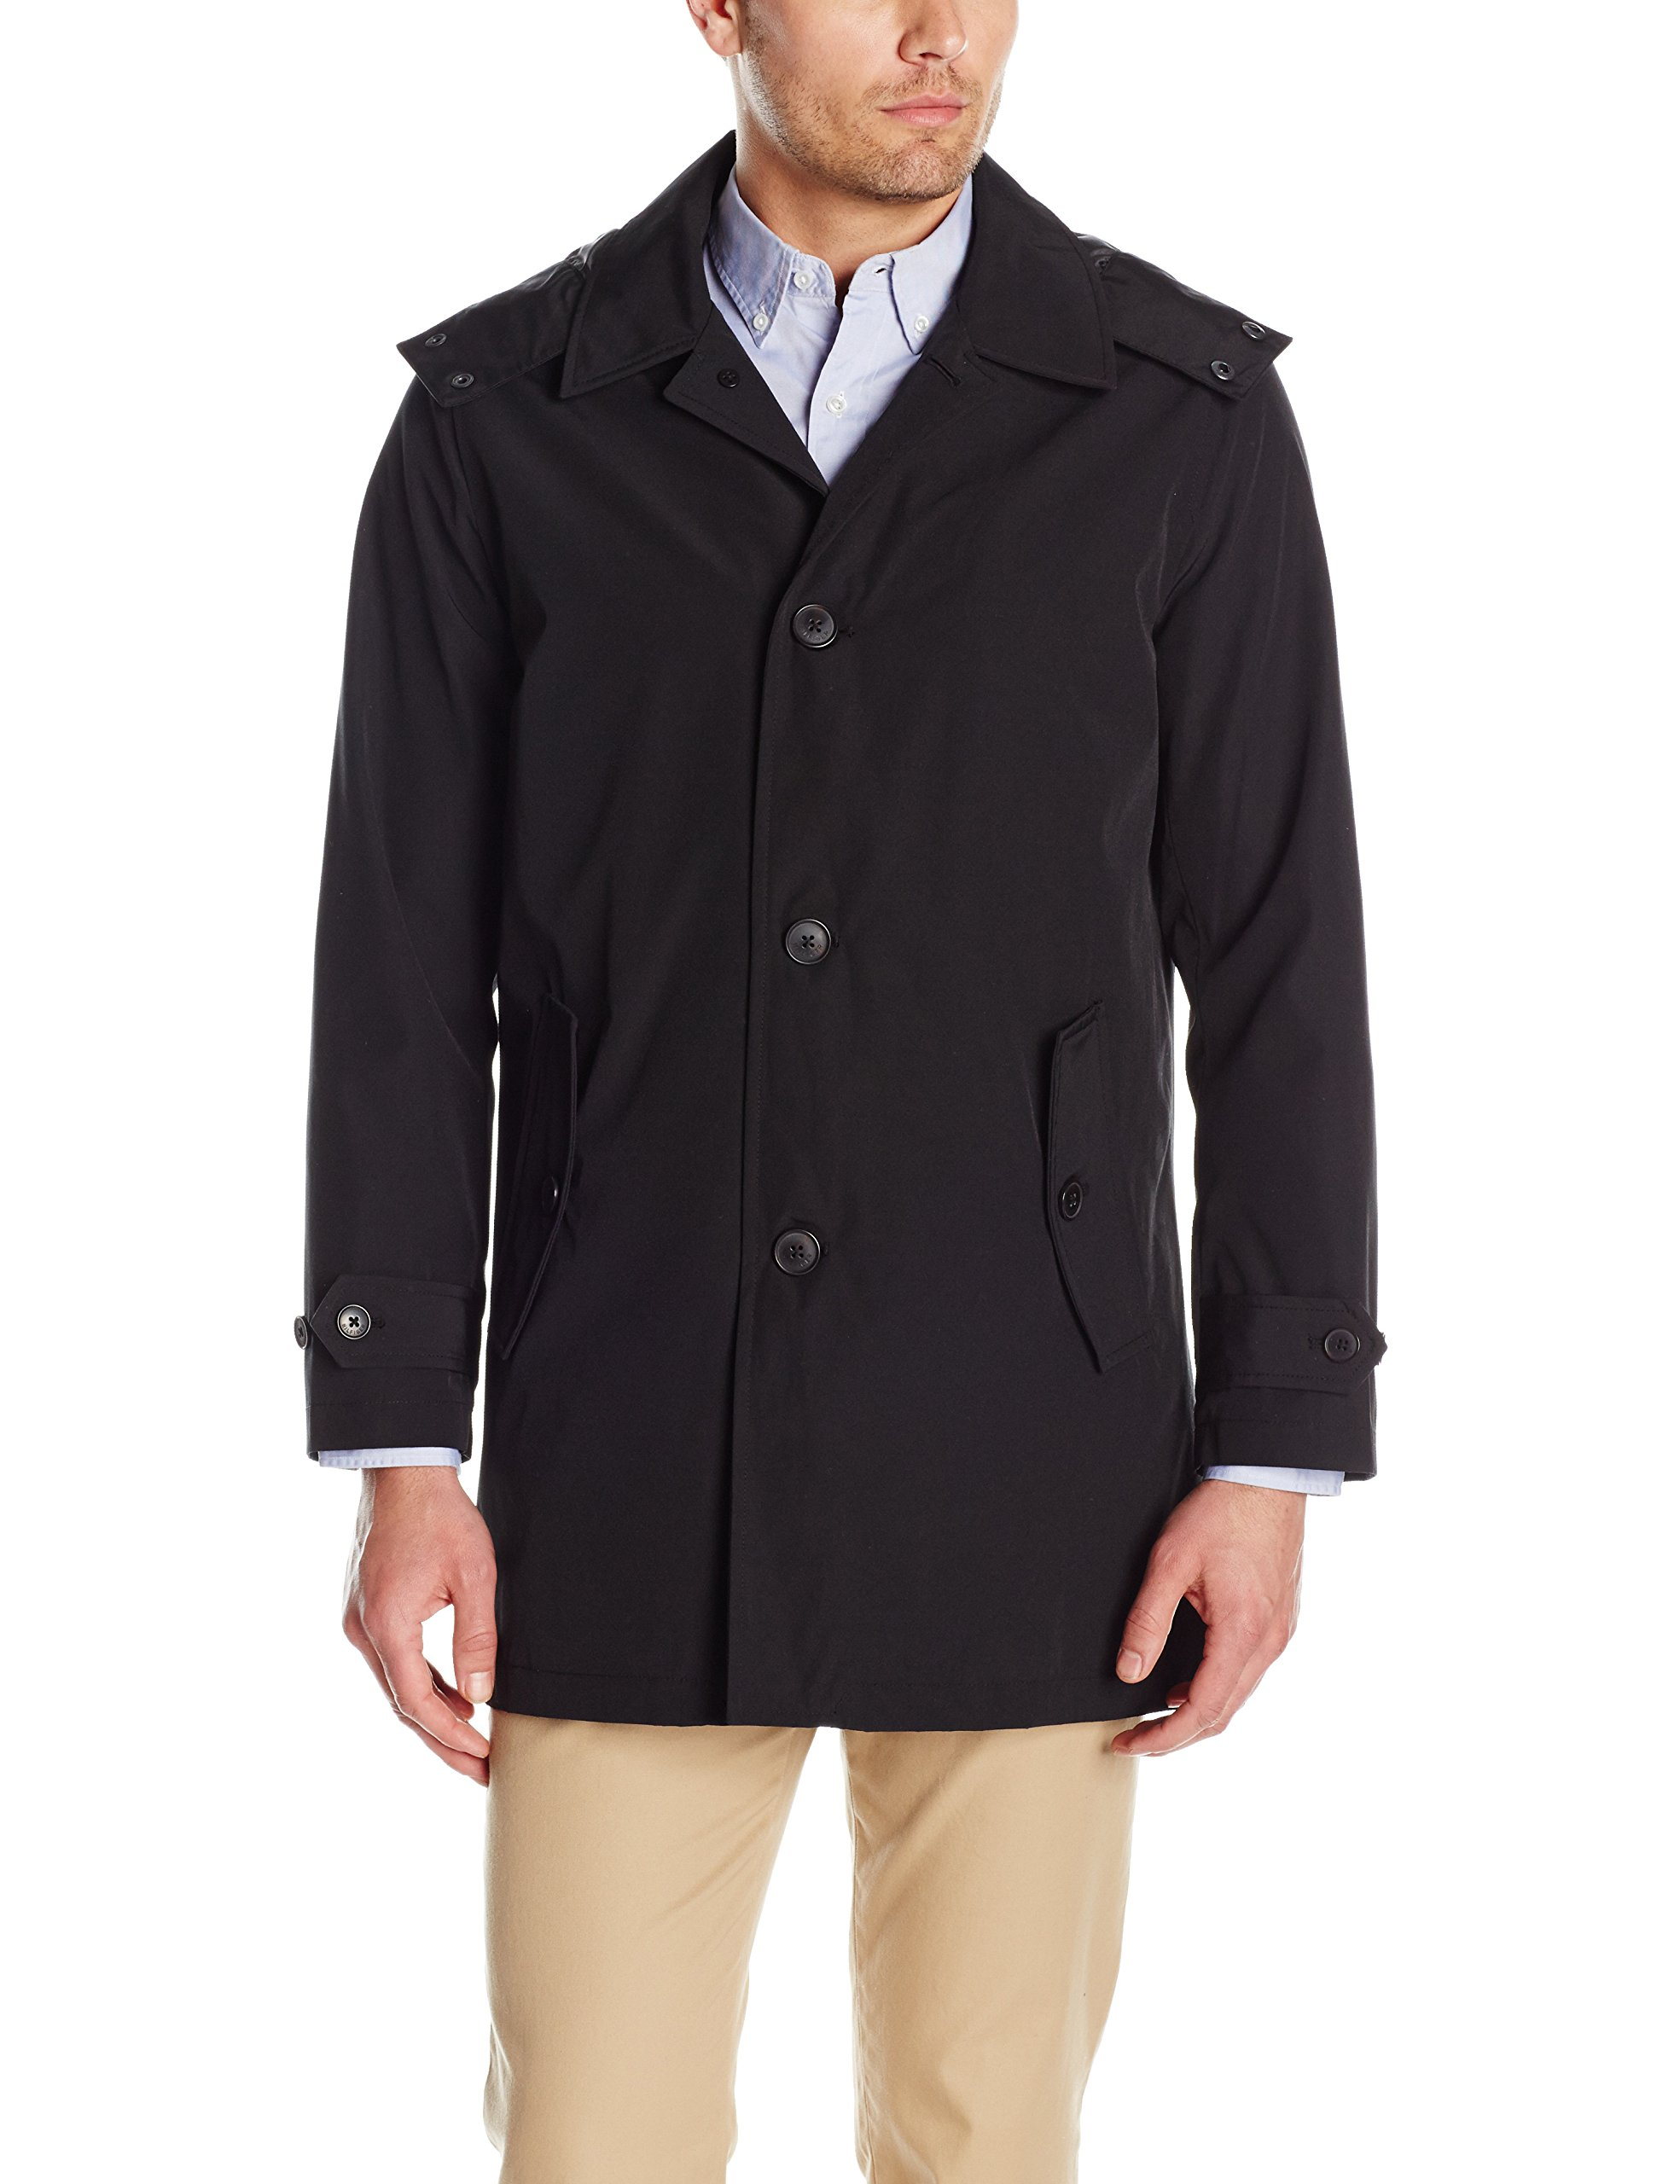 Tommy Hilfiger Men's Hooded Rain Trench Jacket, black, L by Tommy Hilfiger